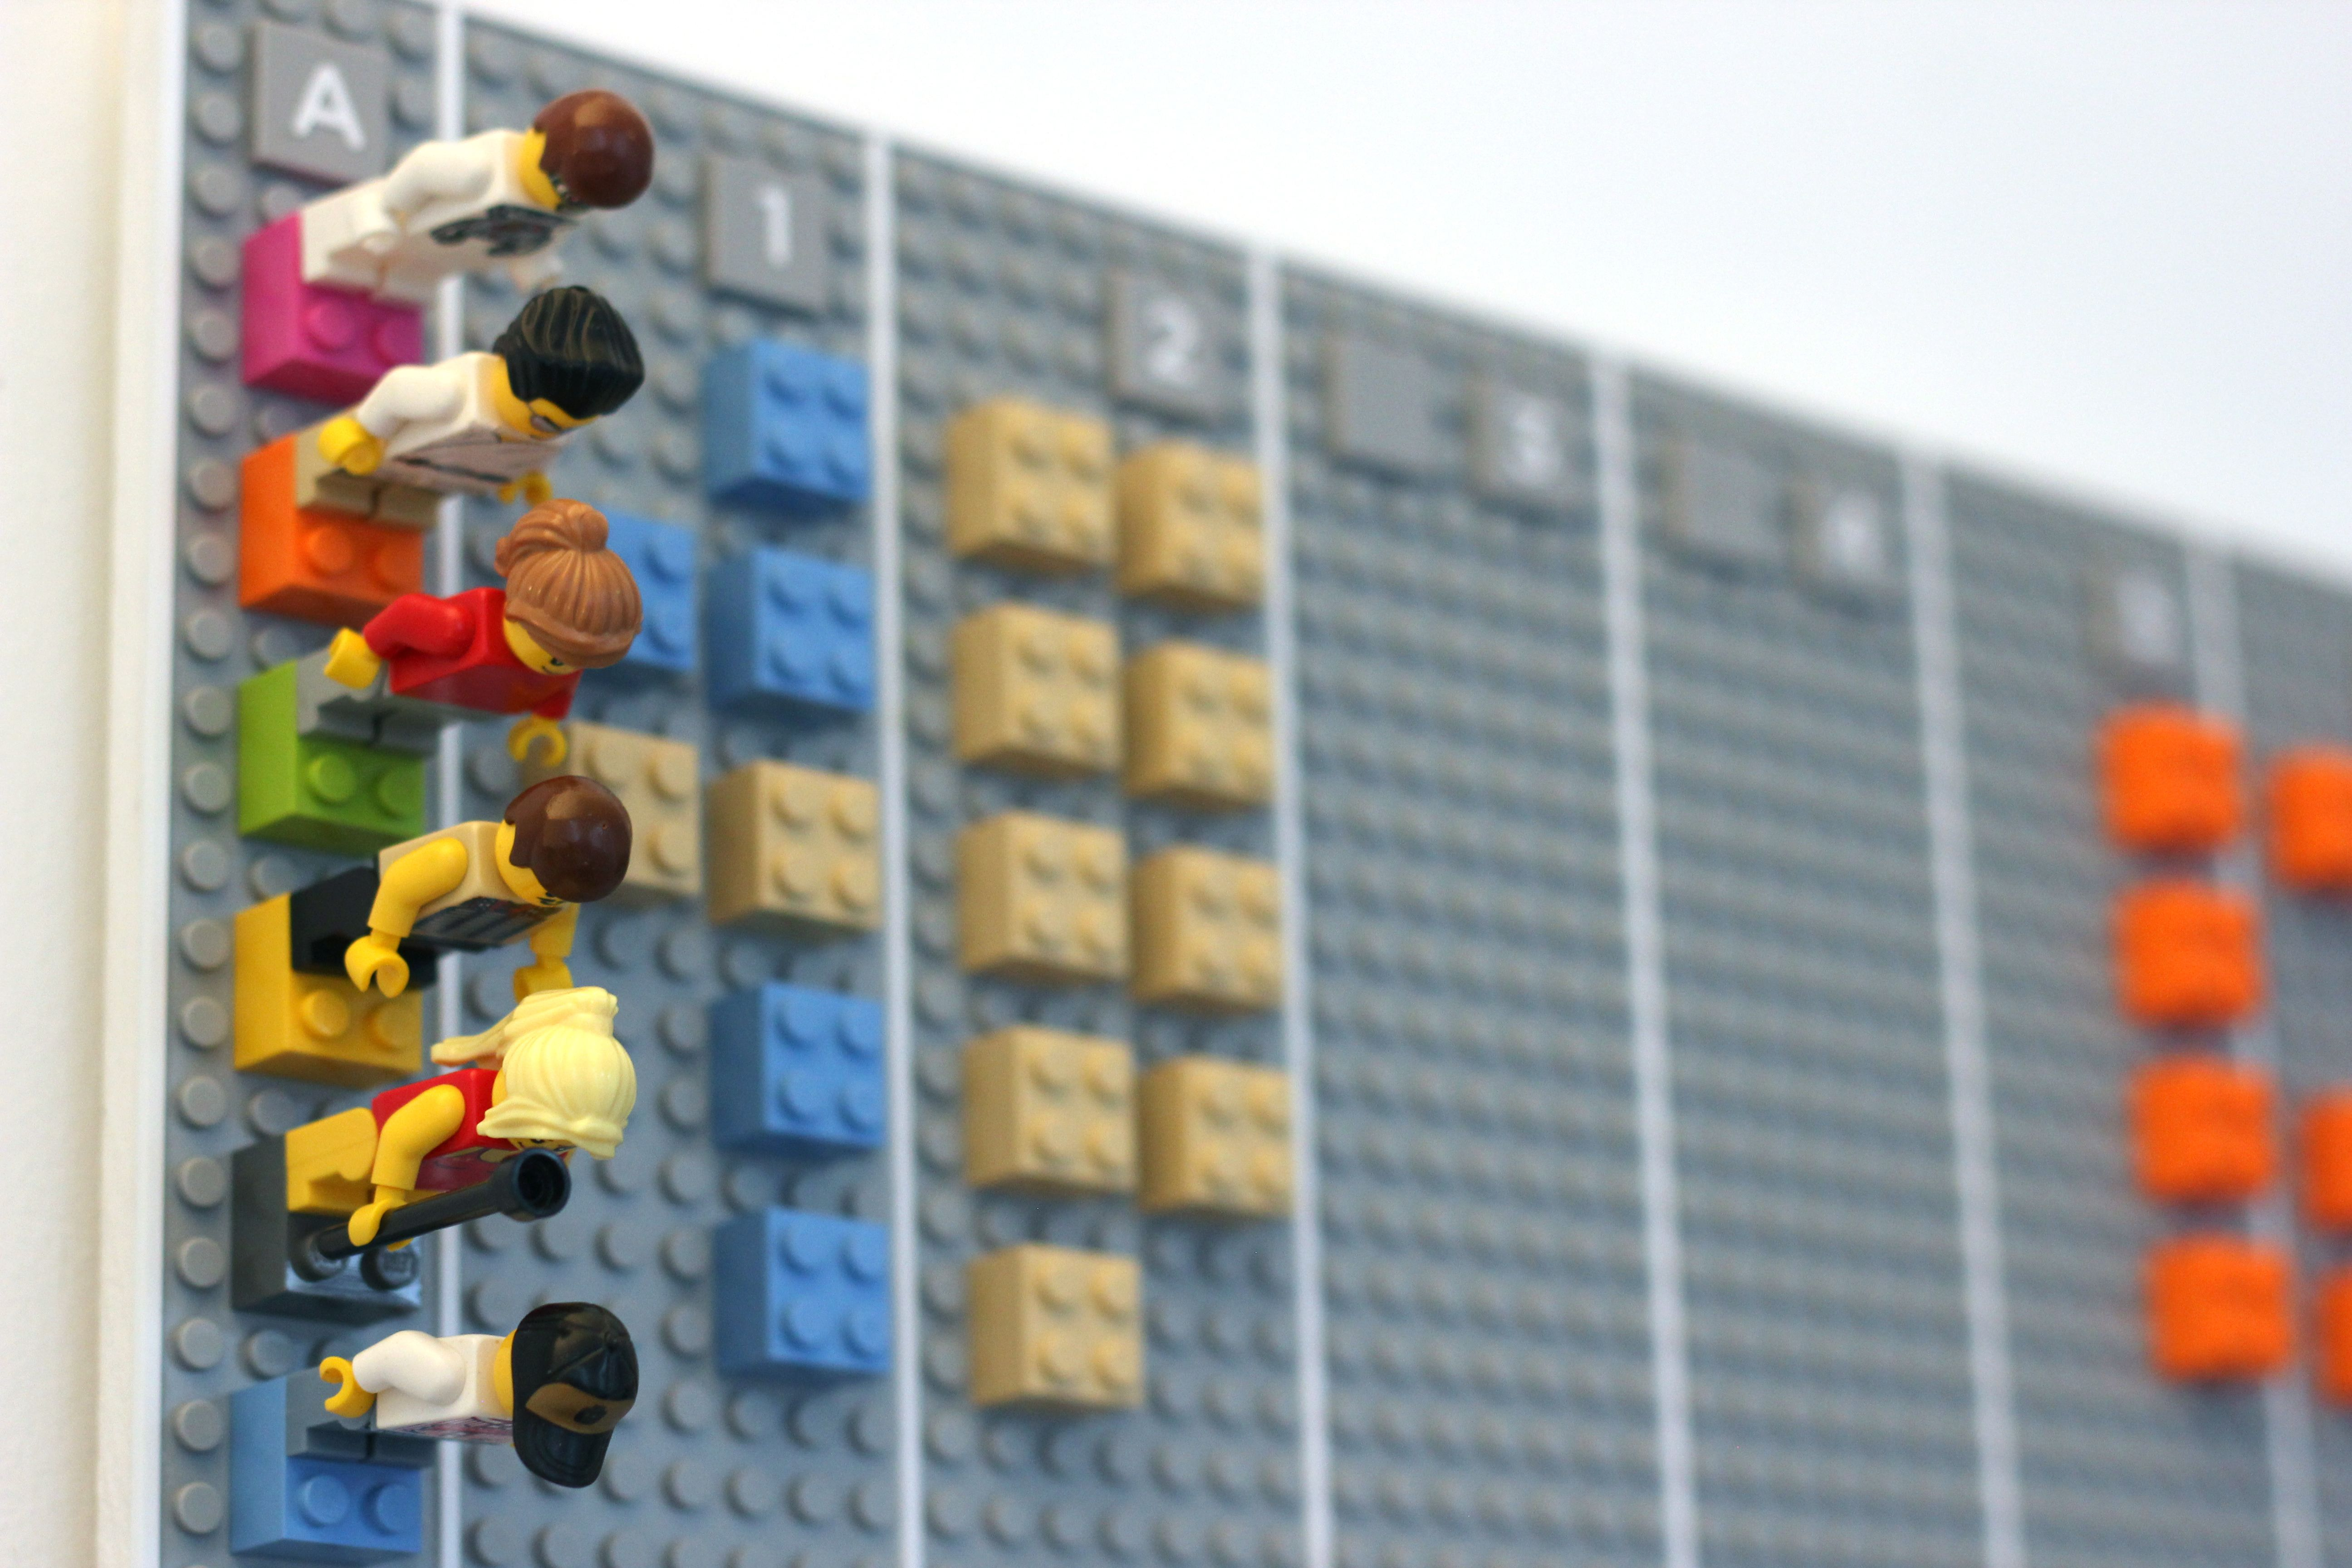 lego3 This awesome LEGO wall planner syncs digitally with your Google Calendar account